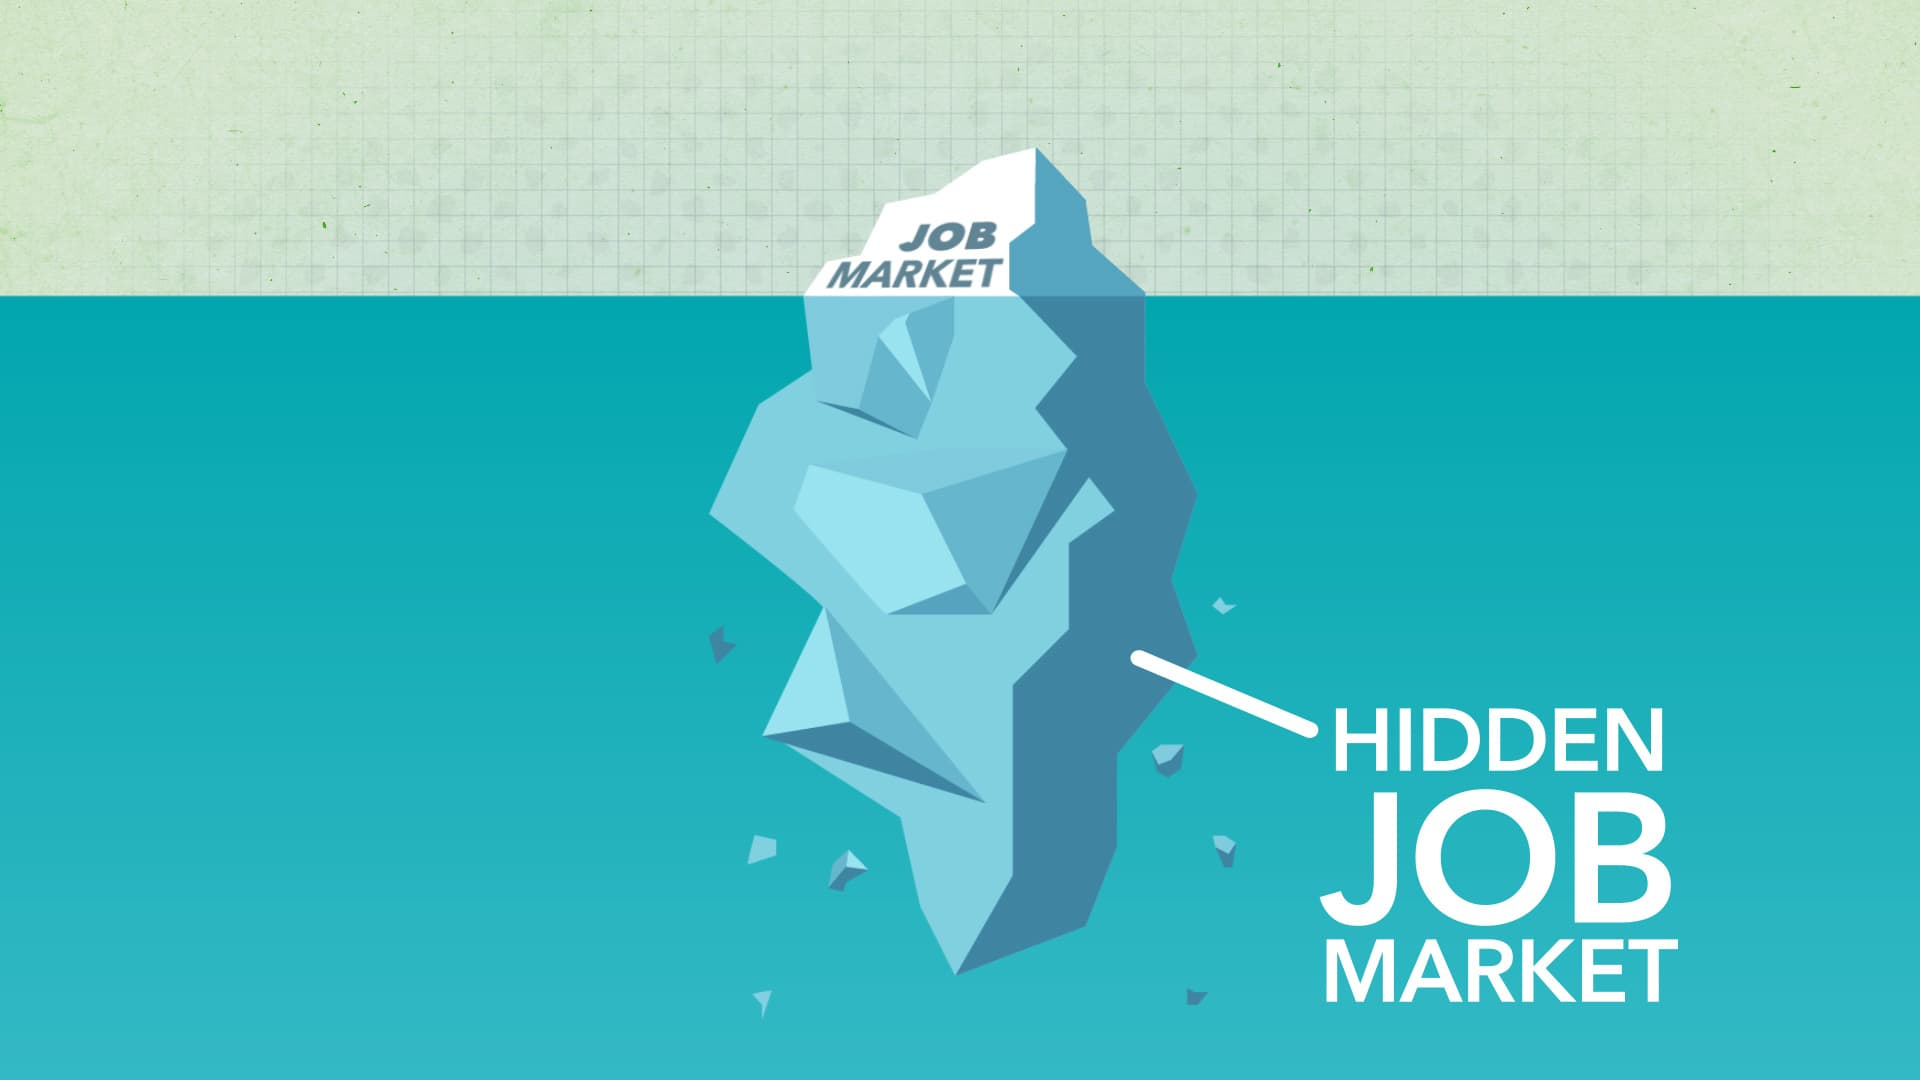 How to find the hidden job market by networking